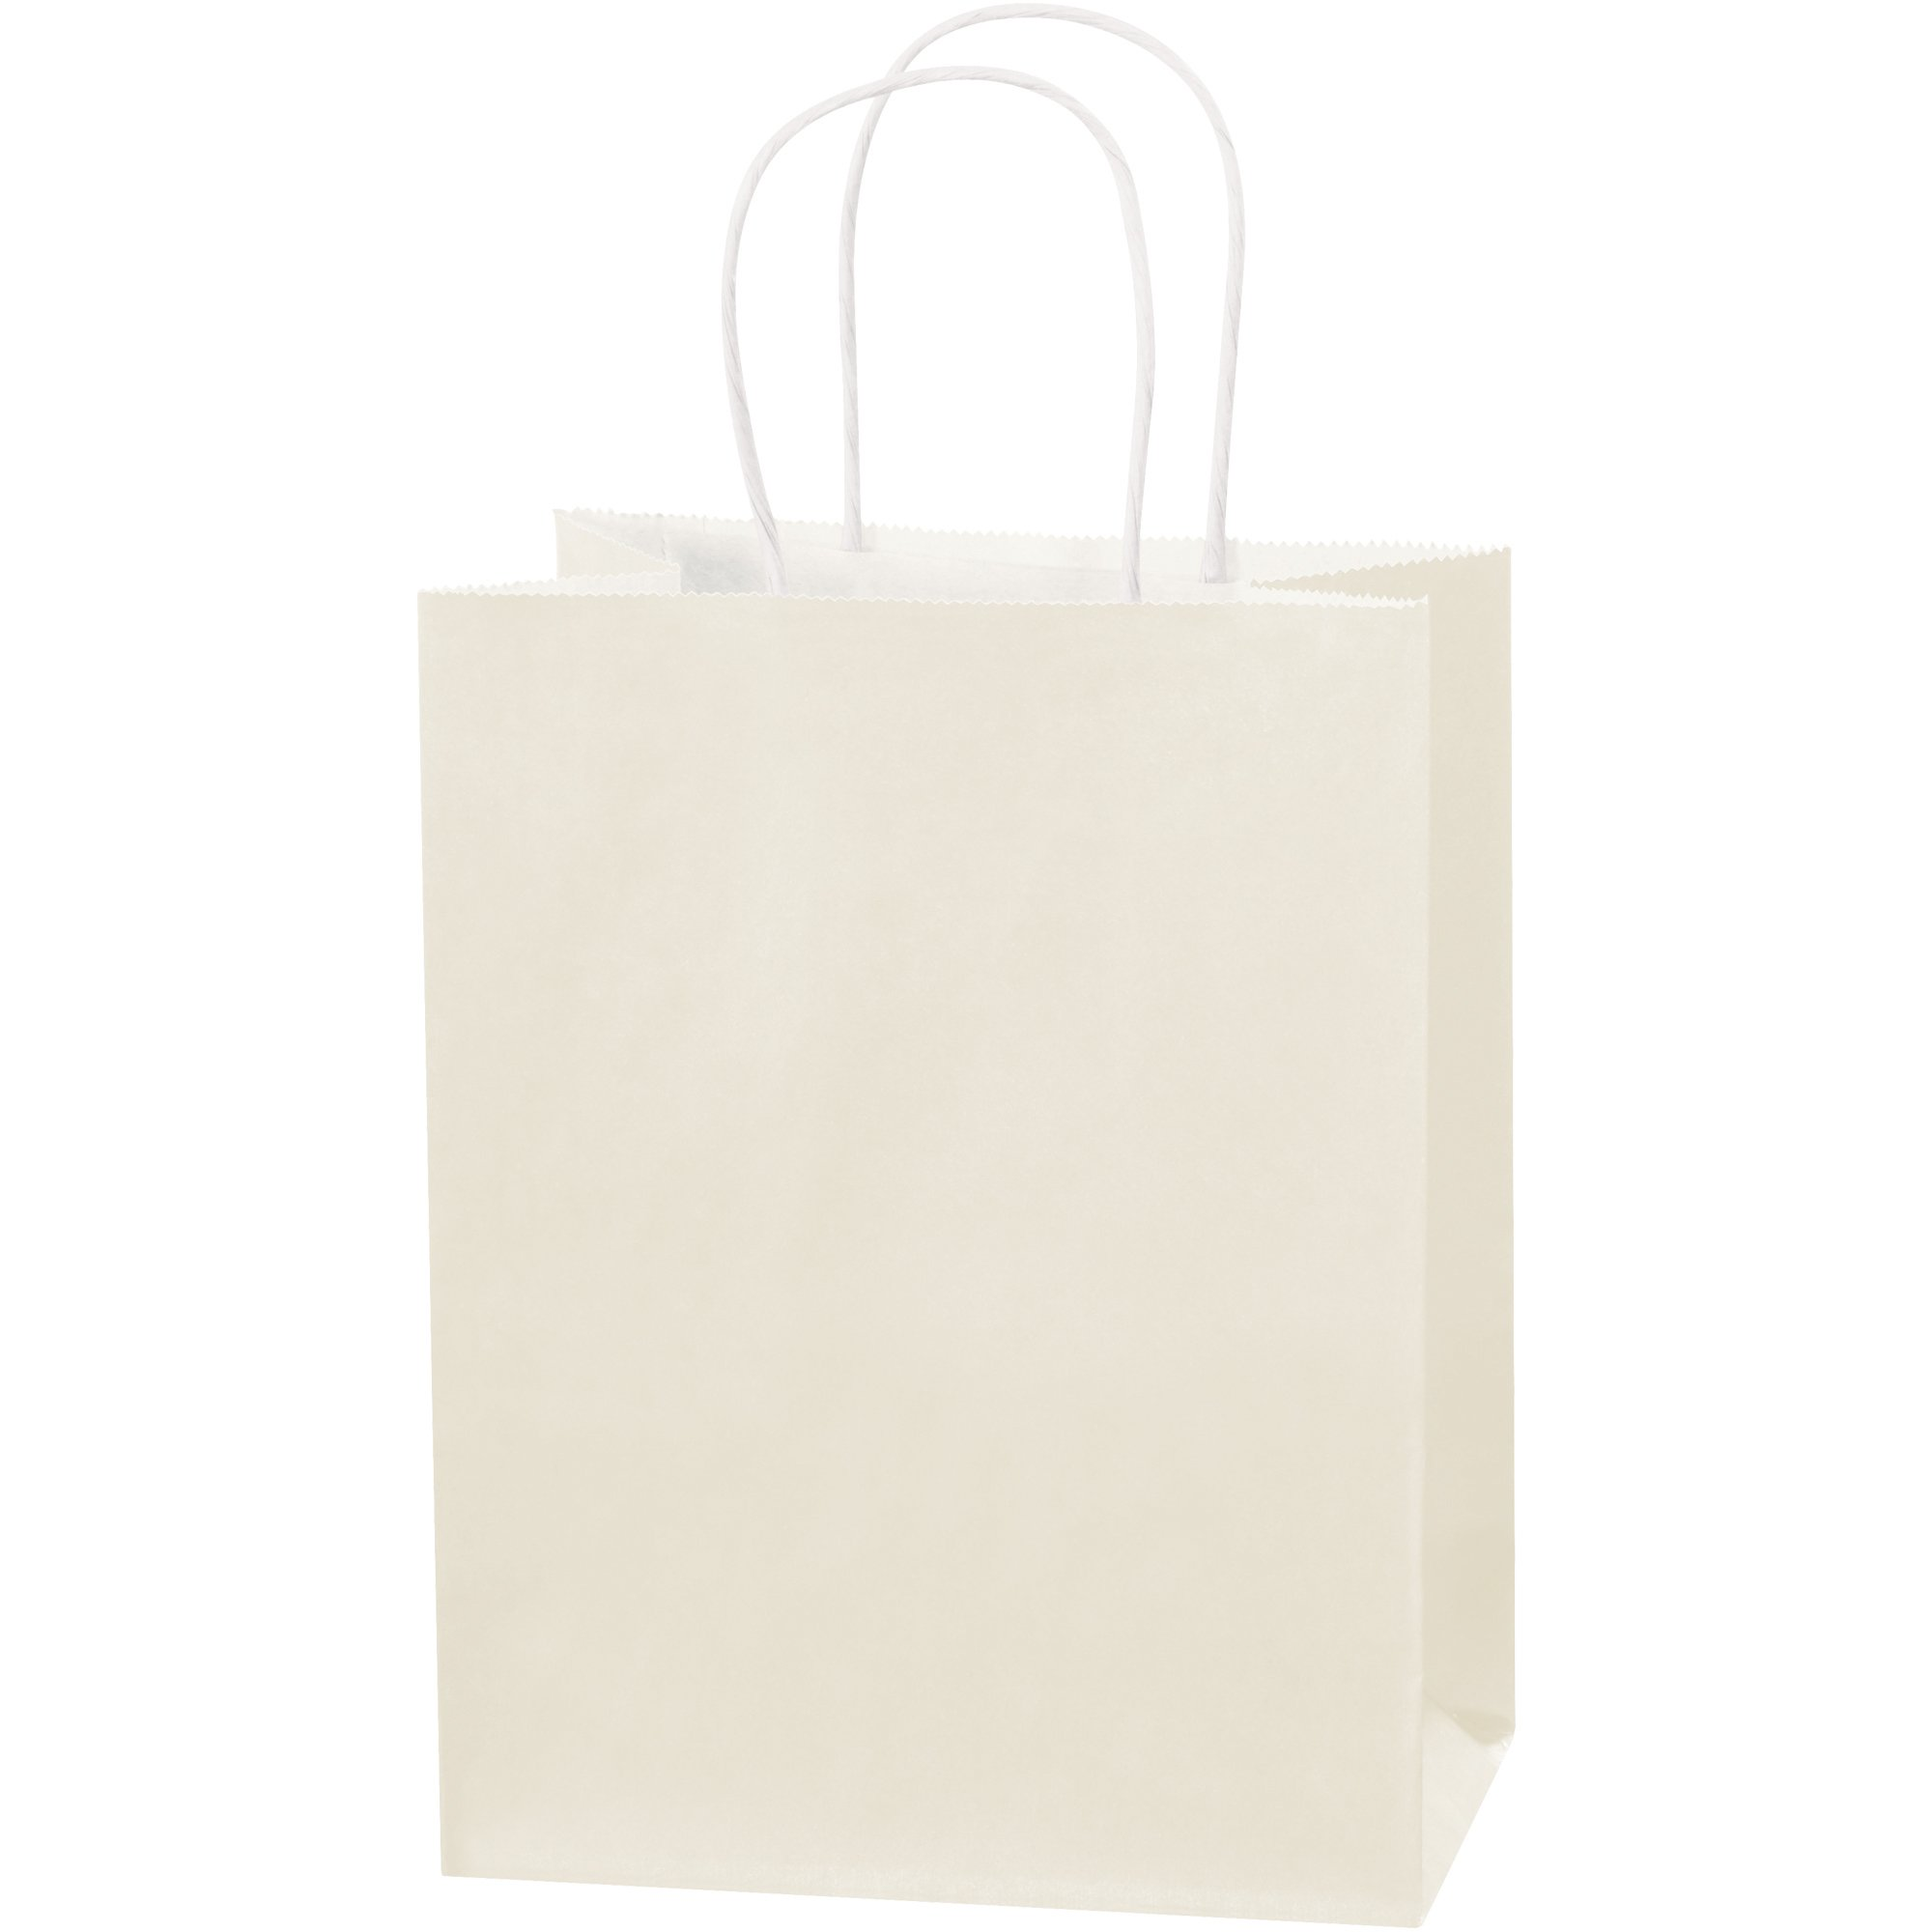 Tinted Paper Shopping Bags, 8'' x 4 1/2'' x 10 1/4'', French Vanilla, 250/Case